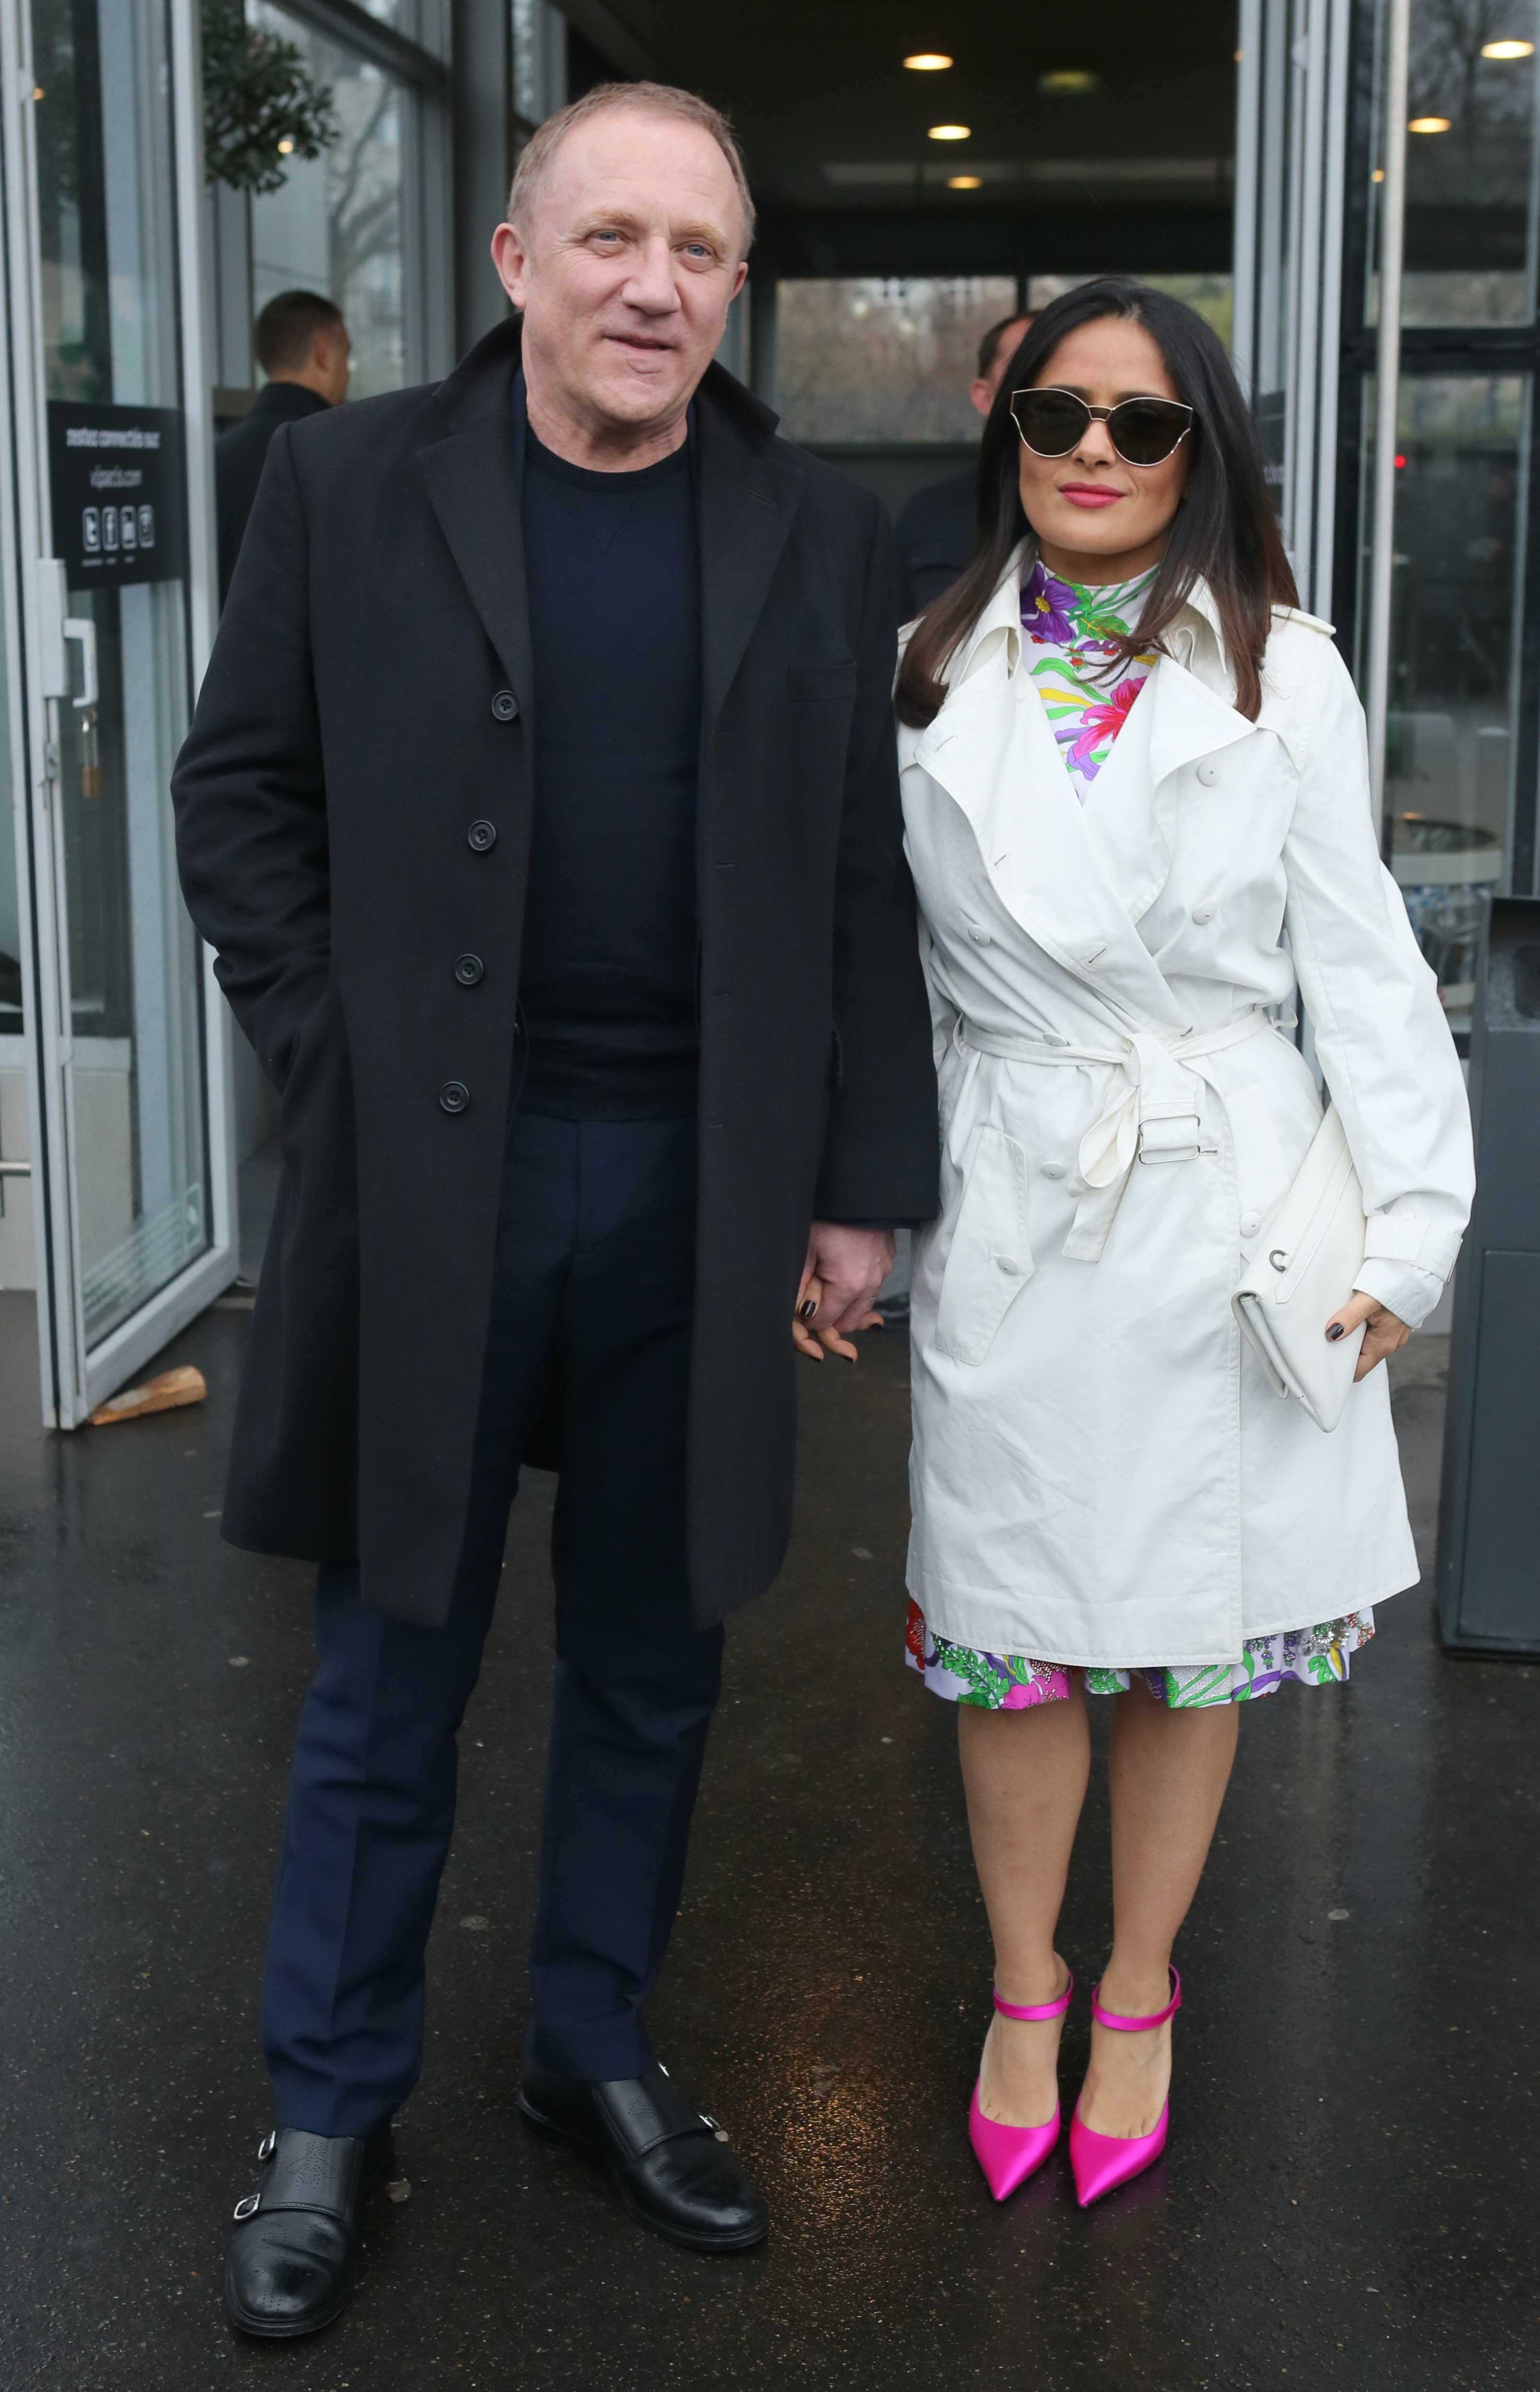 Salma Hayek Shows Off Her Legs As She Arrives At Balenciaga Show With François-Henri Pinault